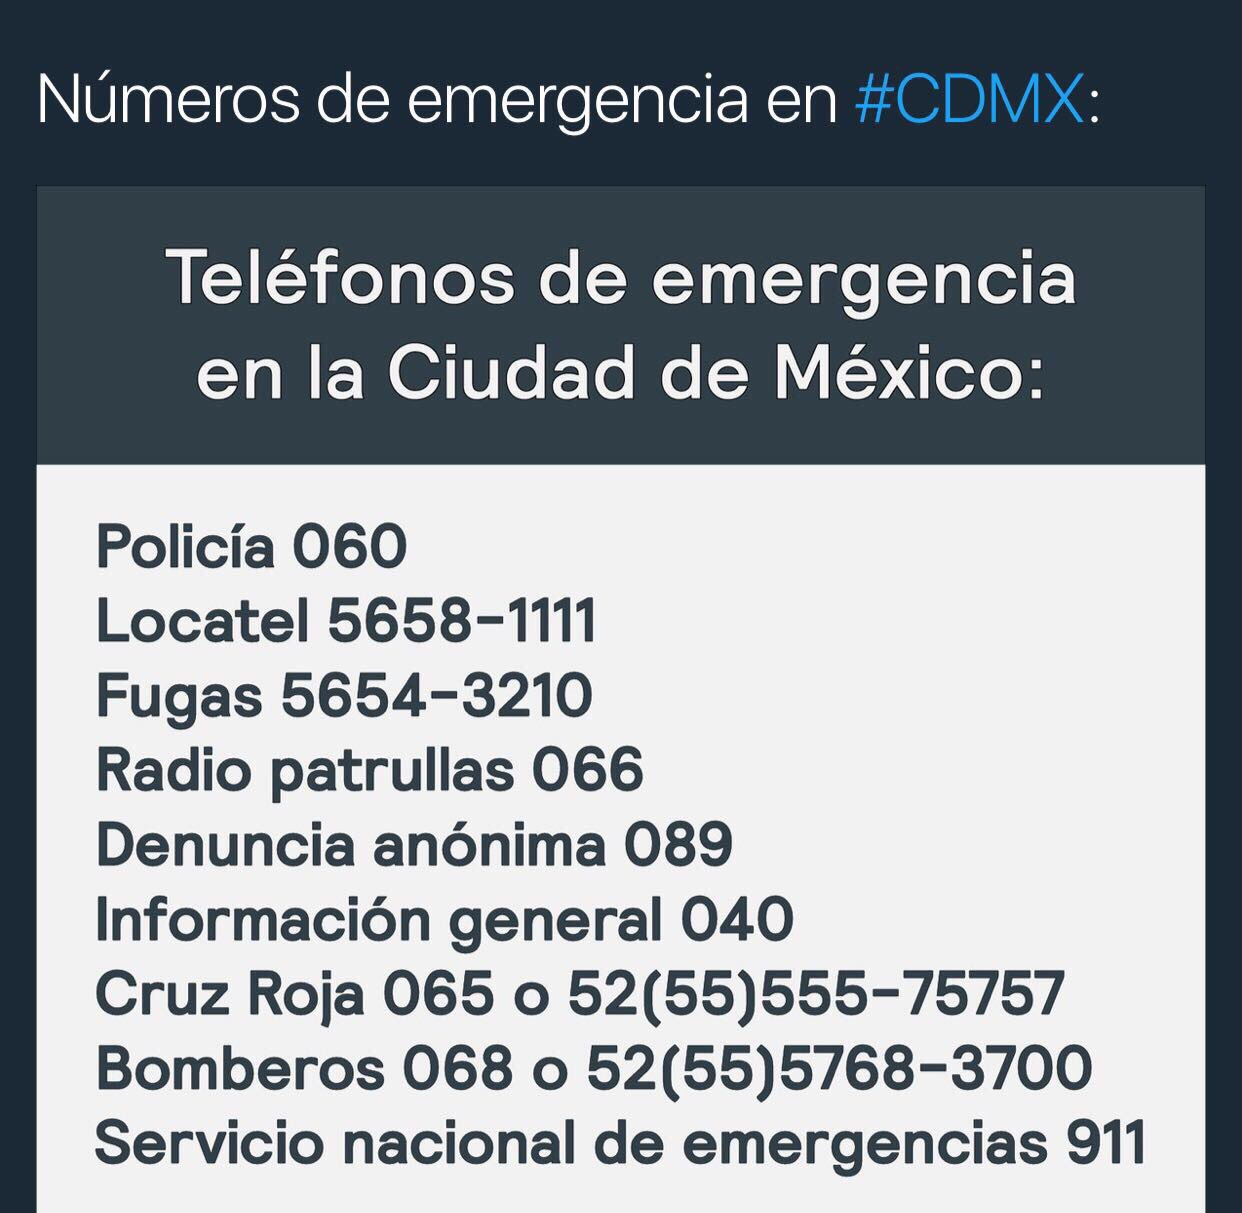 Por favor compartan #Mexico estamos con ustedes #FuerzaMexico #PrayForMexixo �� https://t.co/vM9pwdXxXg https://t.co/3n6xSxTHIV